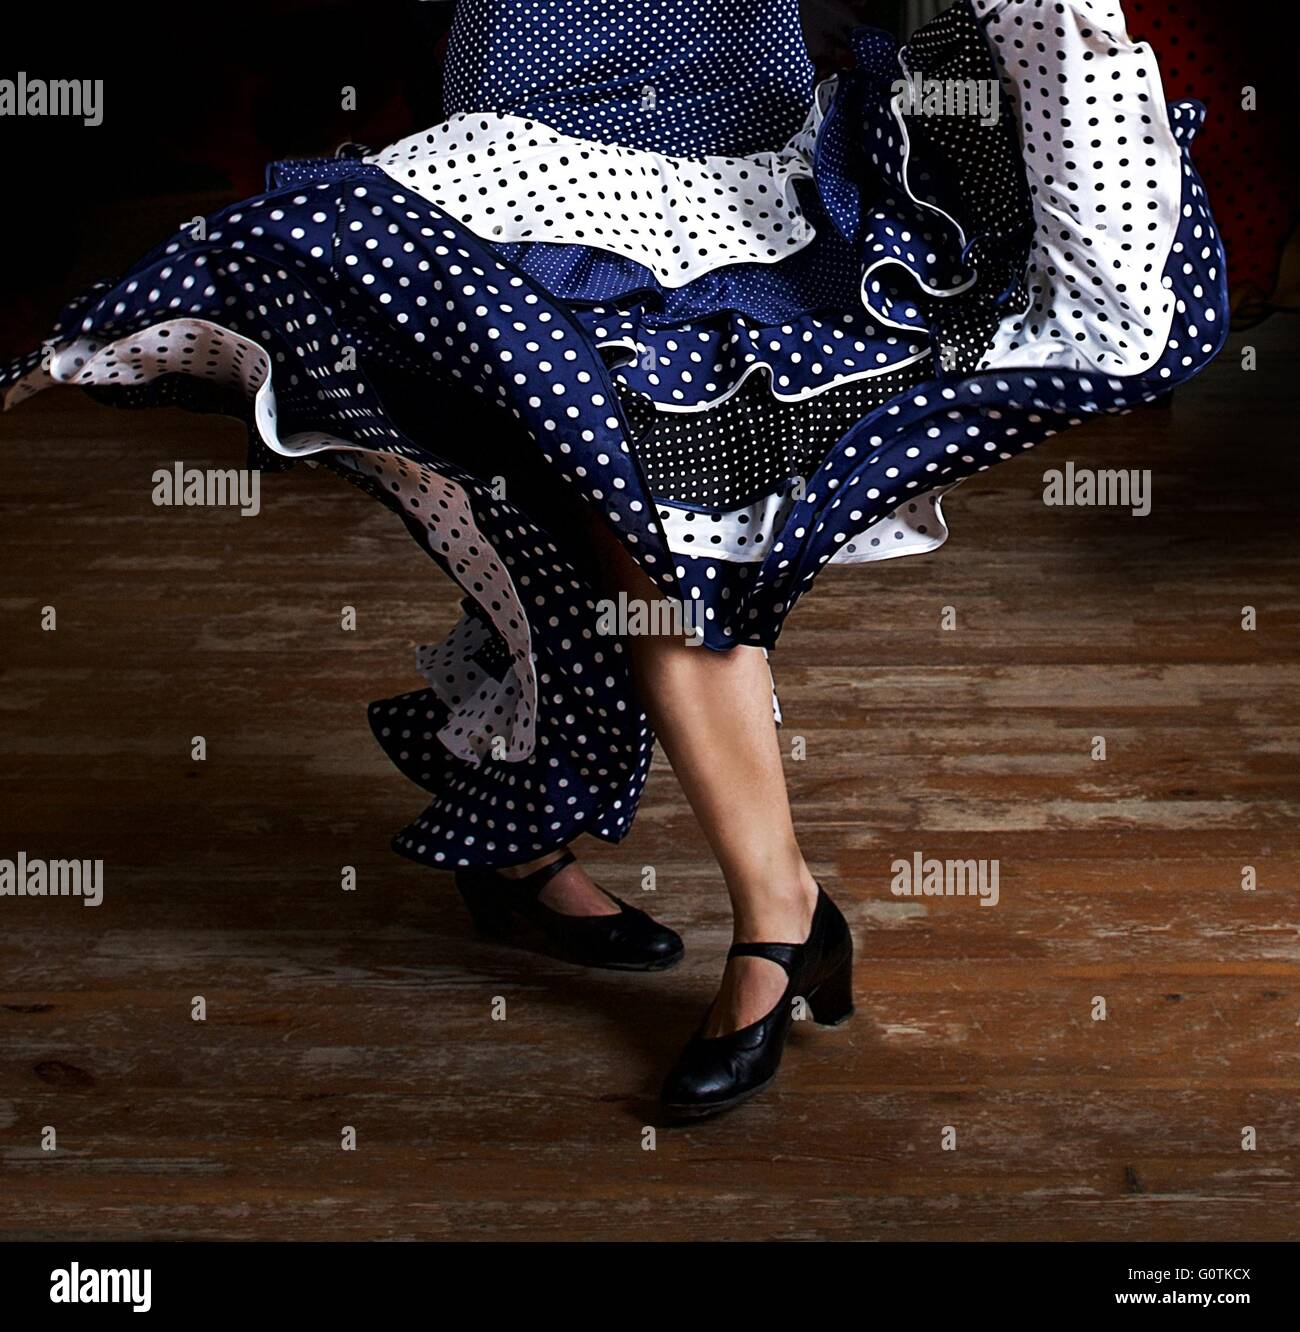 Legs of a woman flamenco dancing in traditional clothing - Stock Image